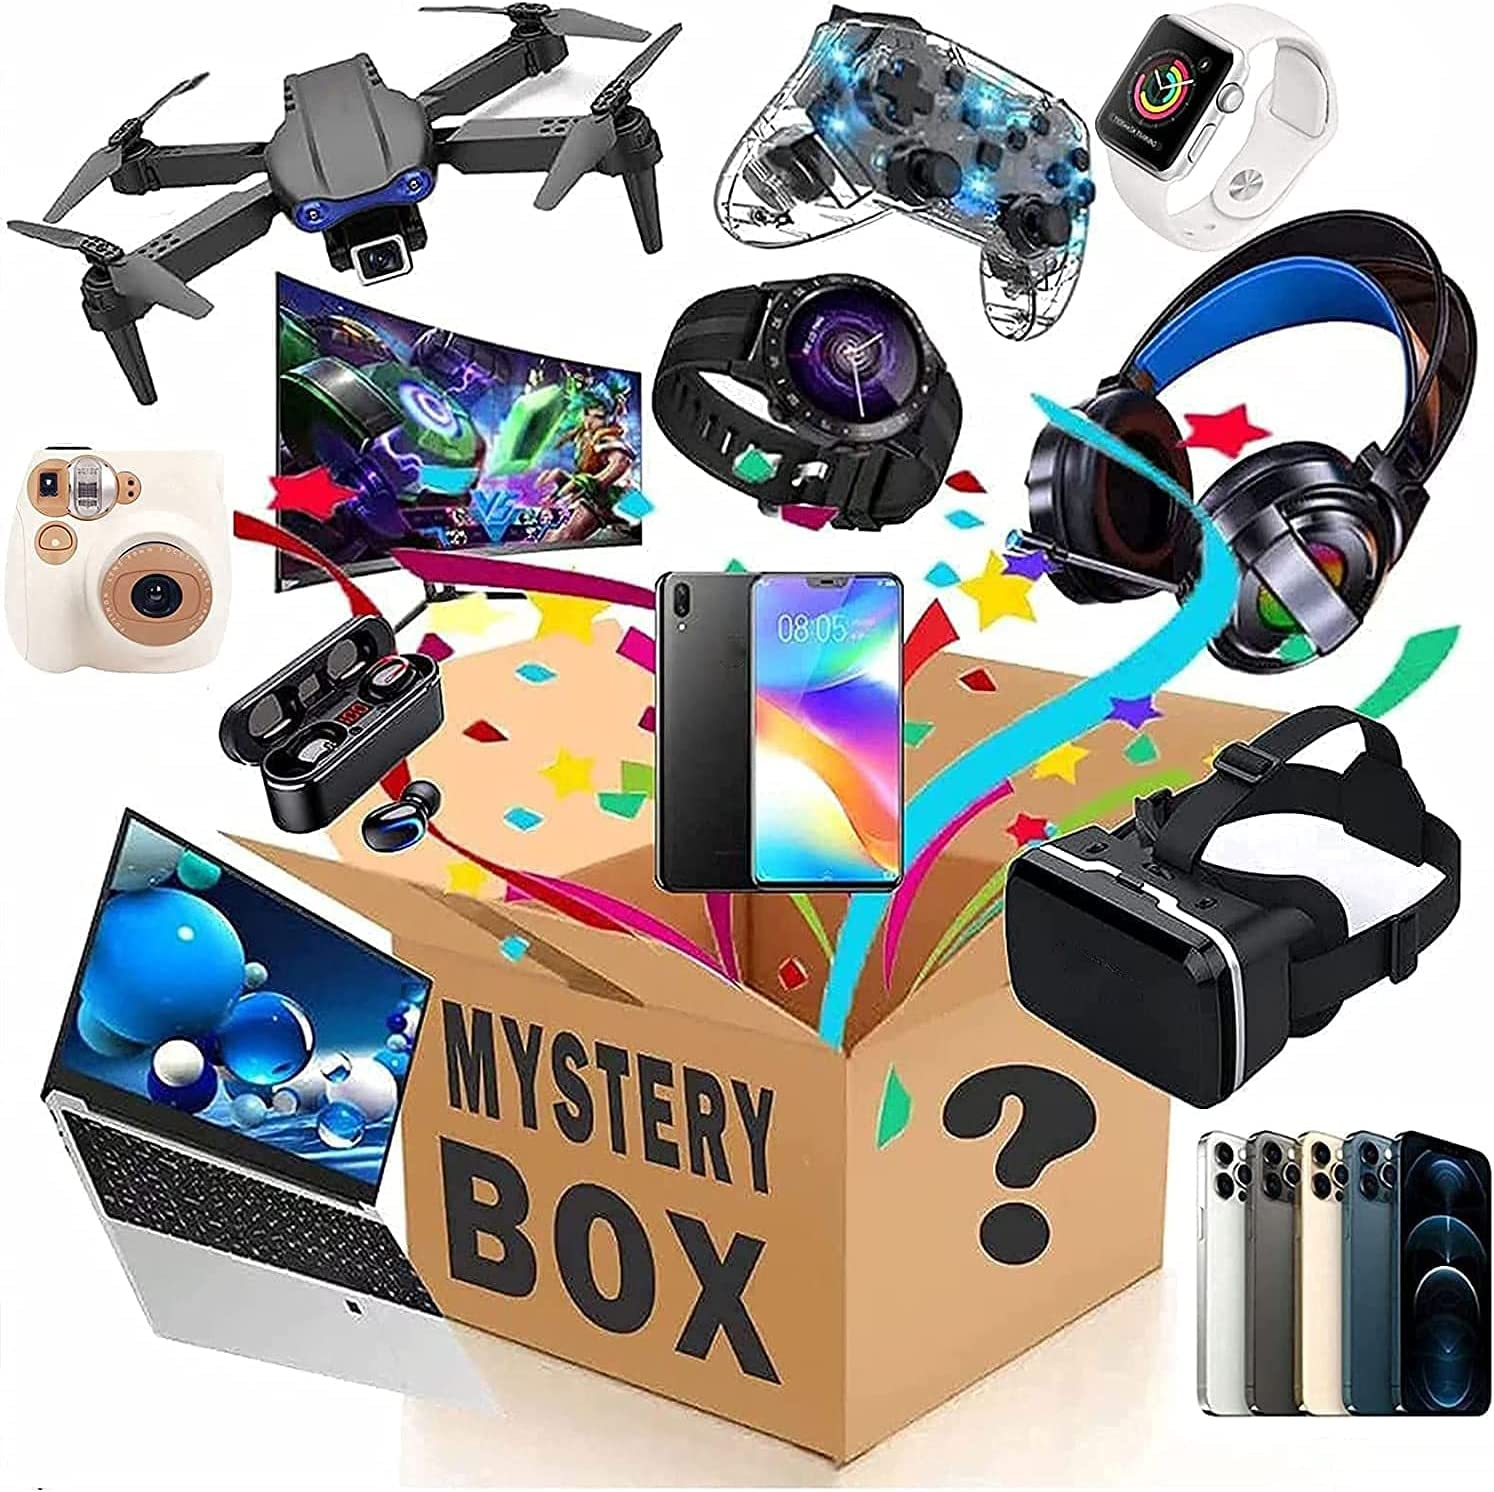 Mystery Box A surprise price is realized Electronics Random Birt Over item handling Boxes